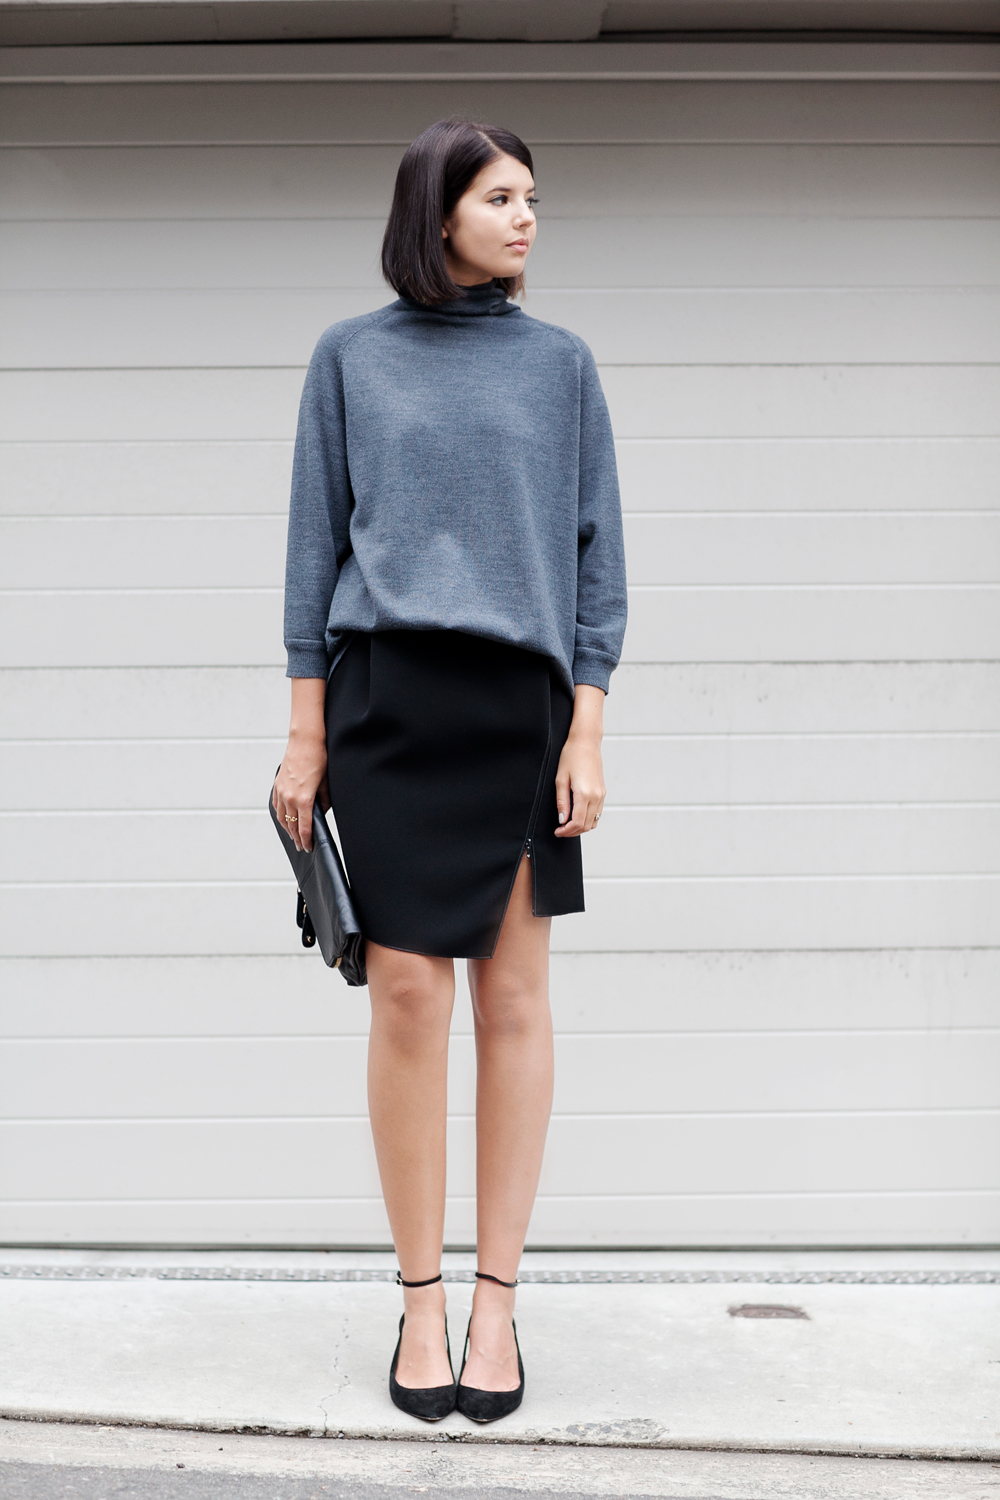 Scanlan & Theodore cape back sweater, Dion Lee scuba skirt (similar here and here), Alexander Wang suede pumps (leather version here), Shop Nomadic clutch